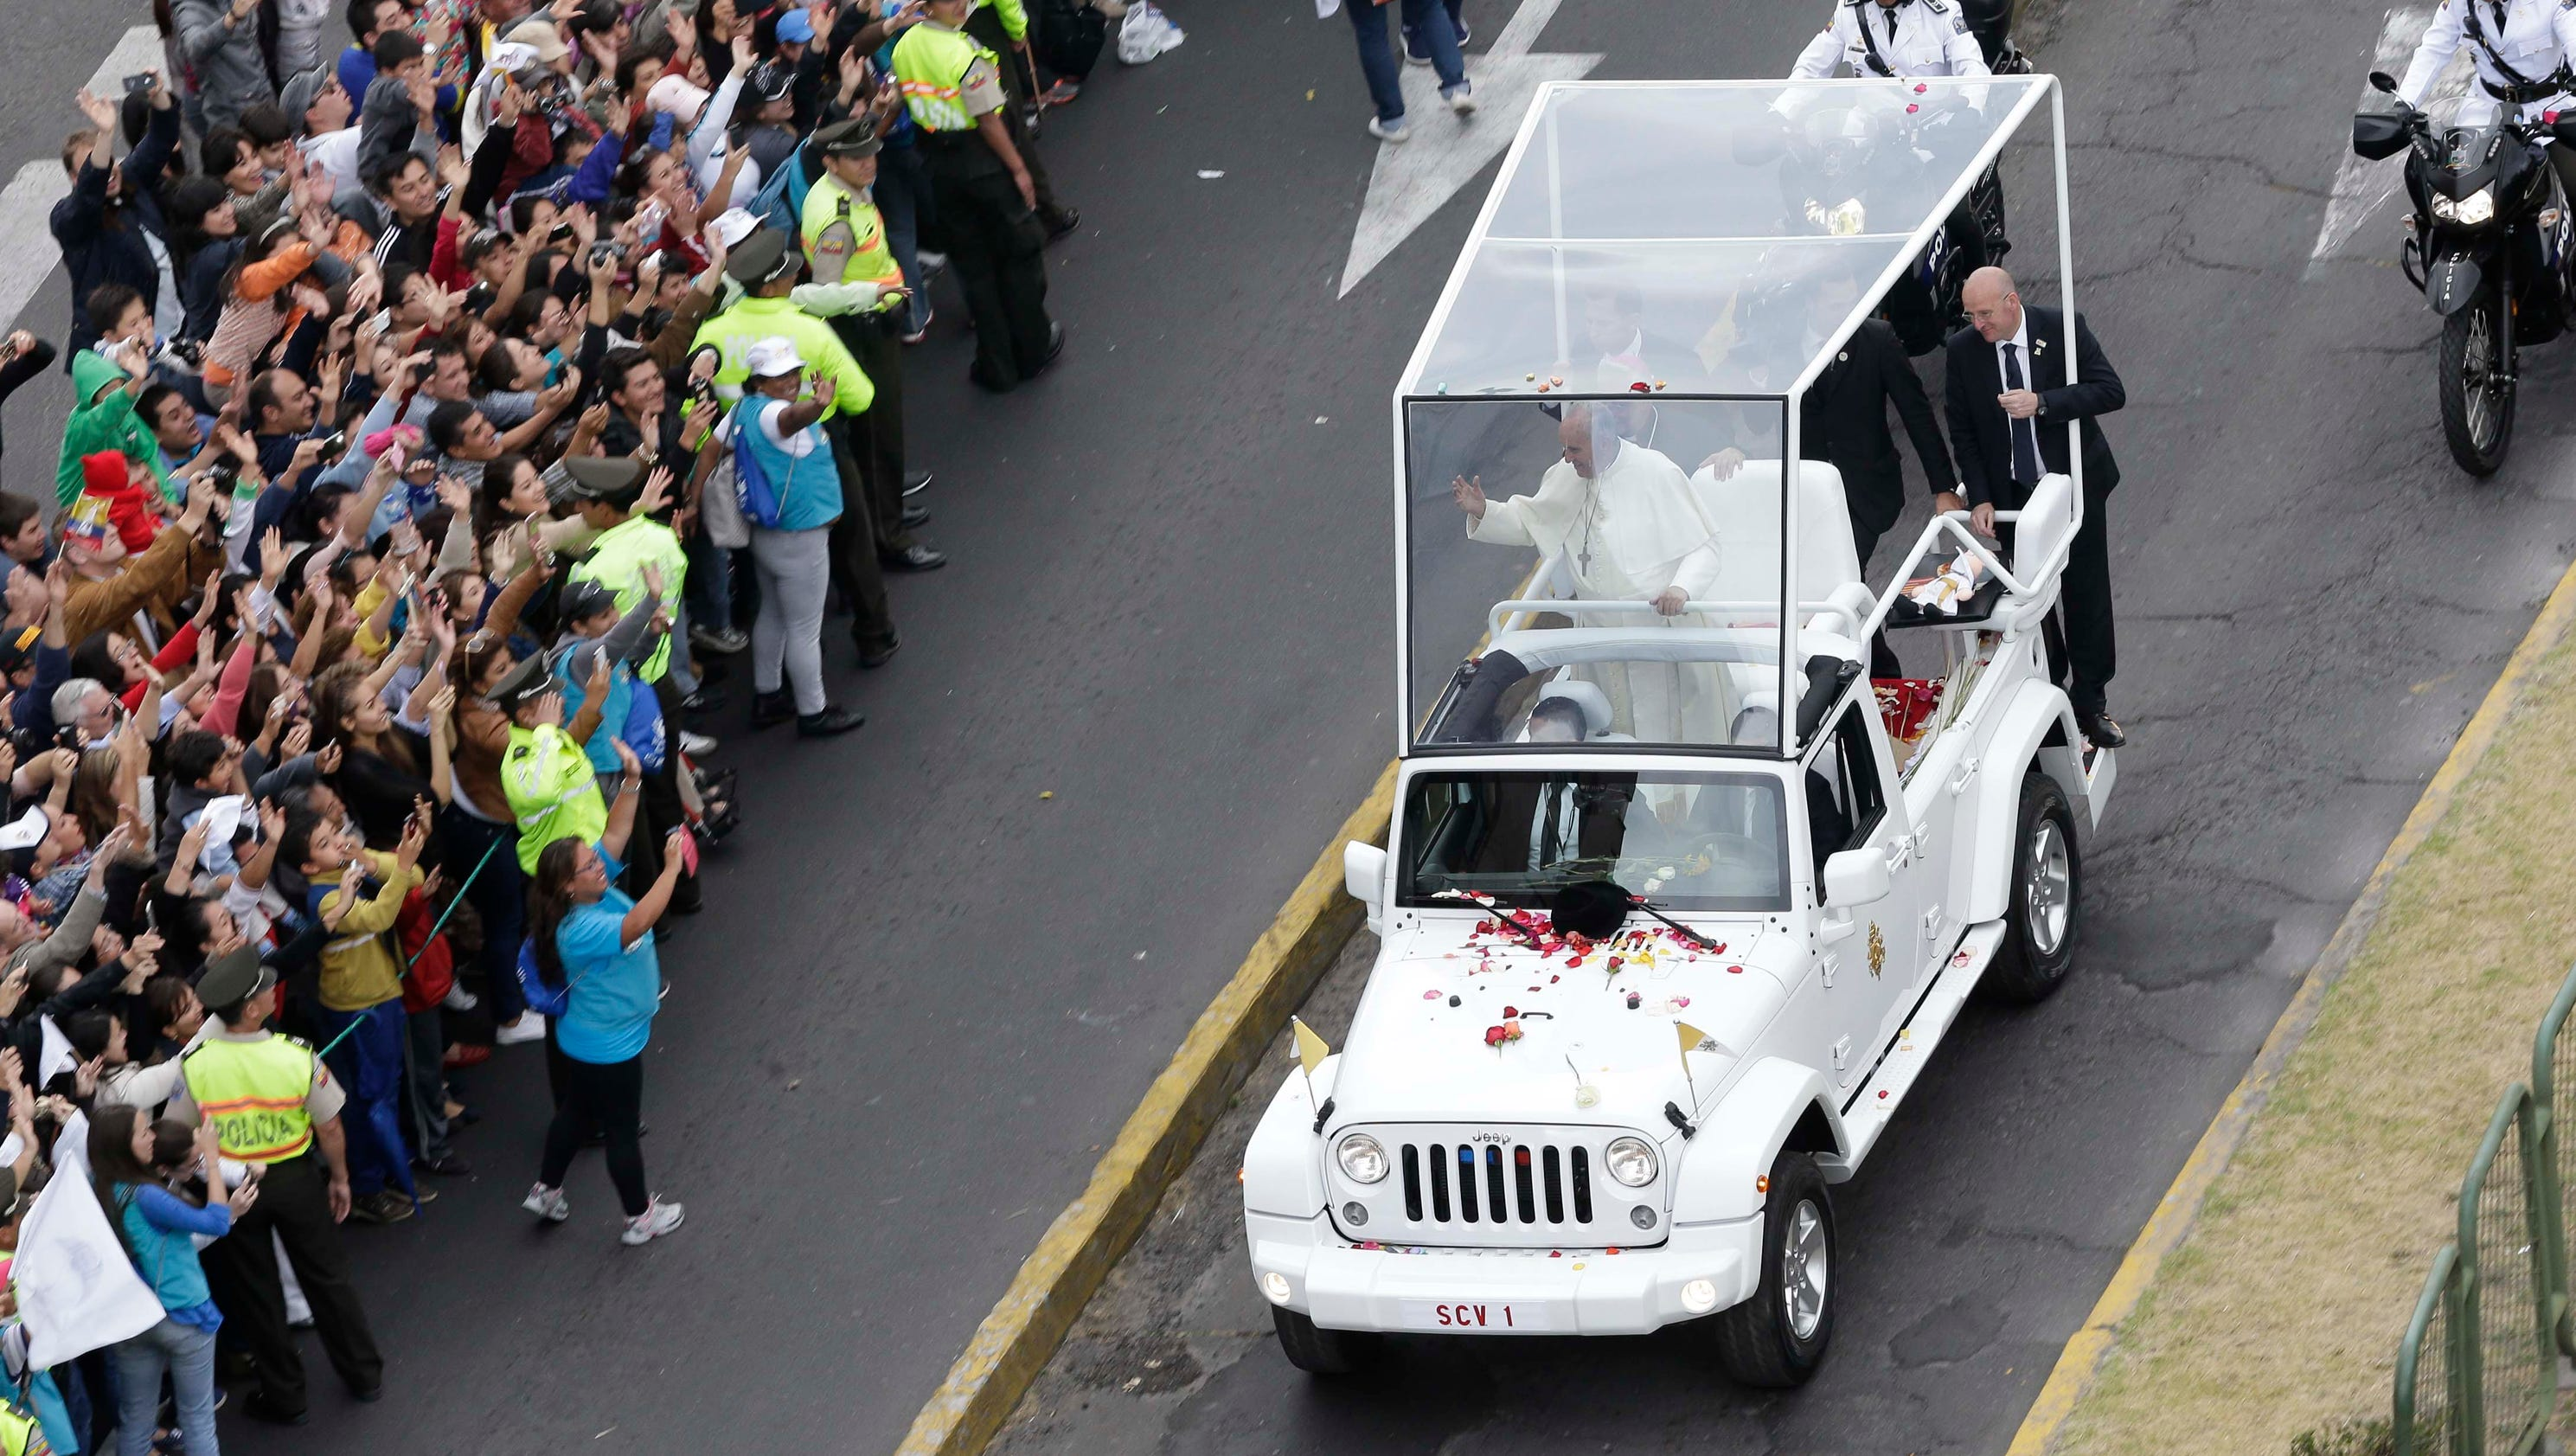 Pope Francis Popemobile Is Jeep Wrangler For U S Visit